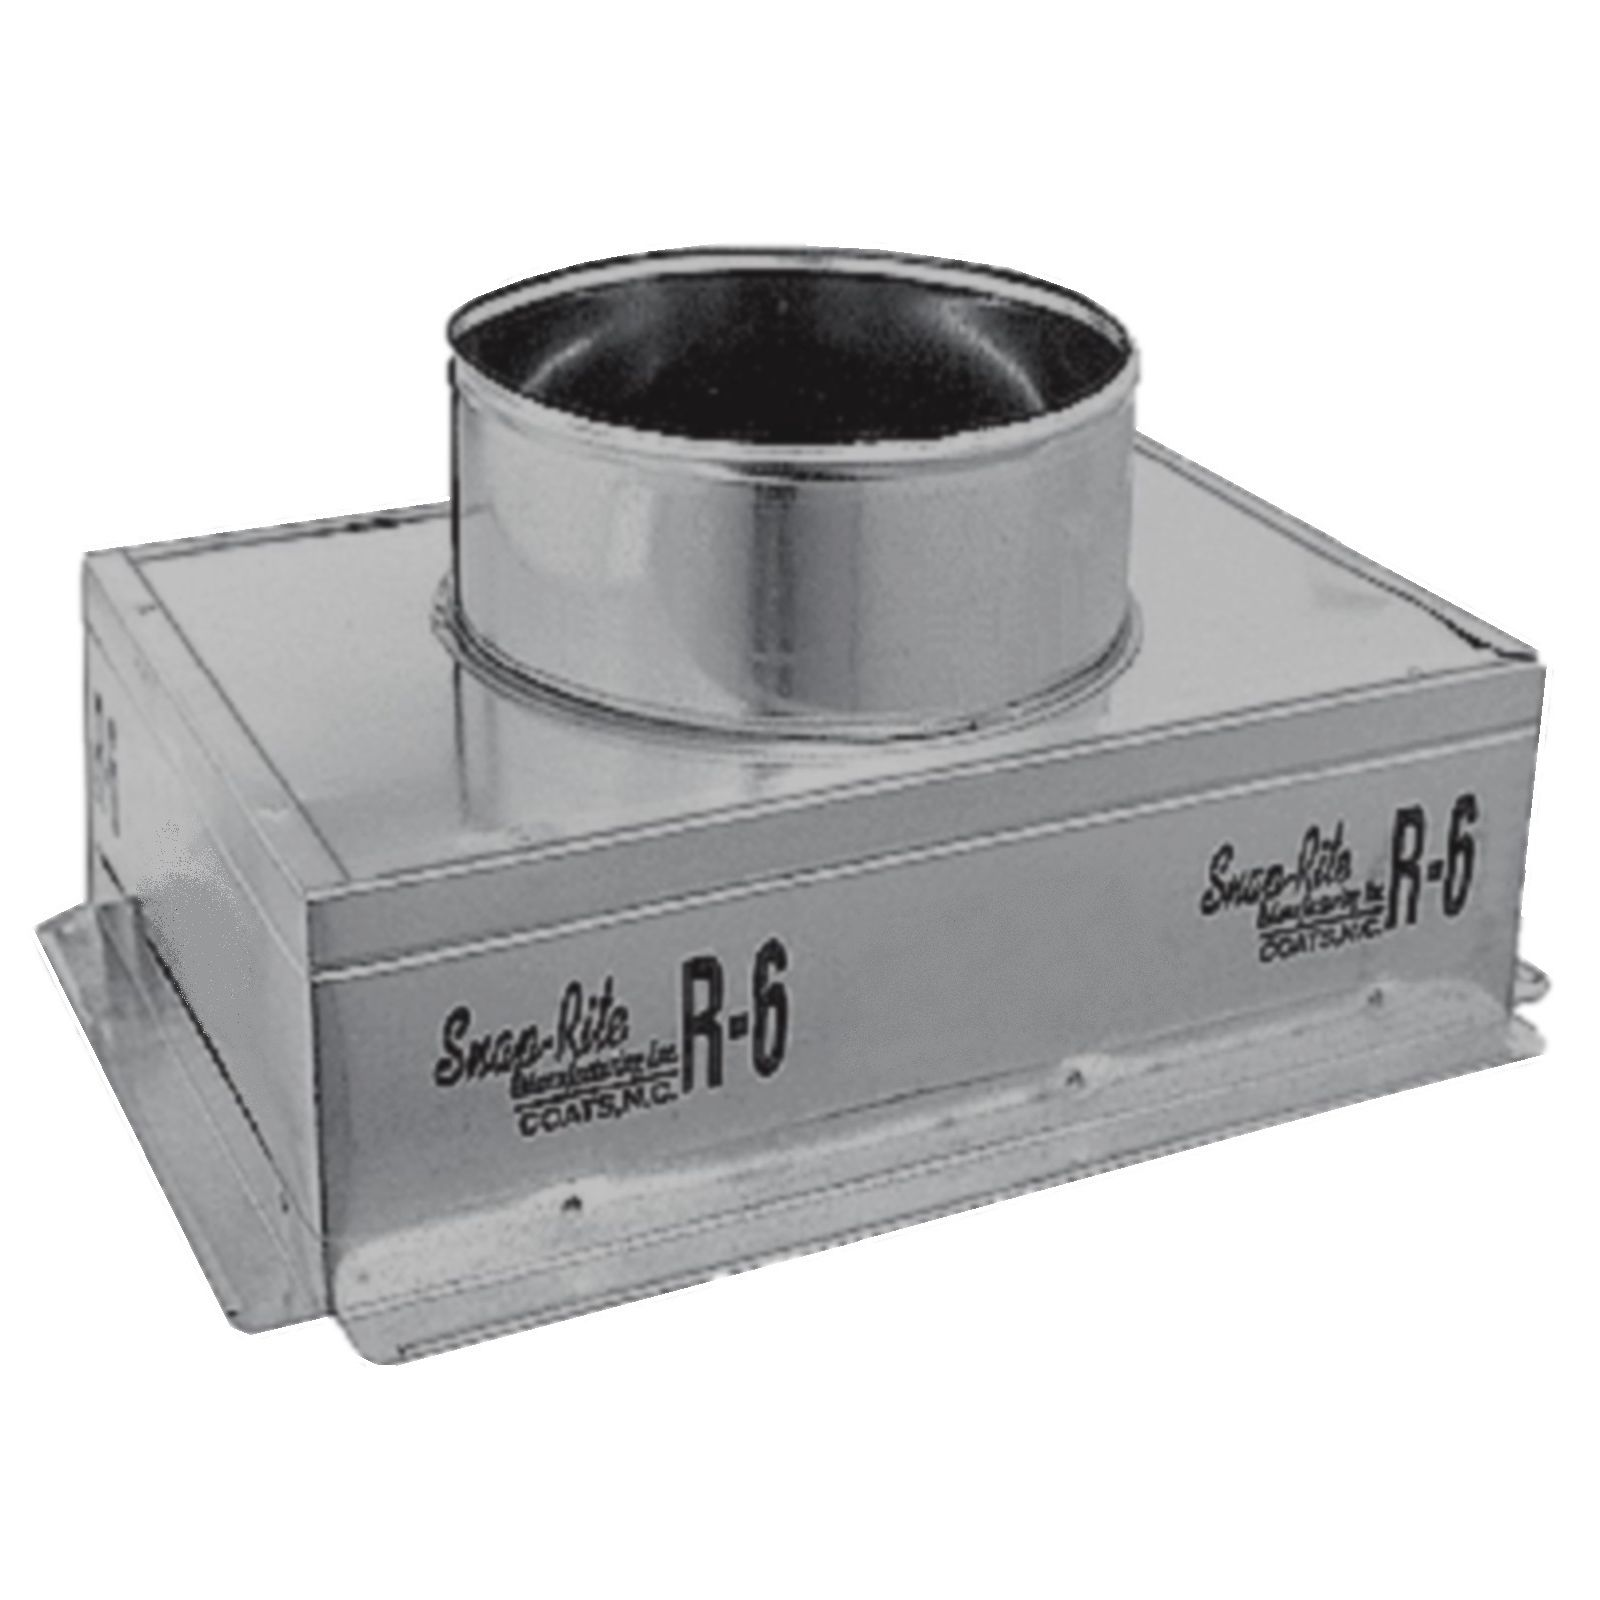 "Snap-Rite 12X06X083600F - Metal Top Insulated Register Box With Flange, 12"" x 06"" x 08"" - R6"